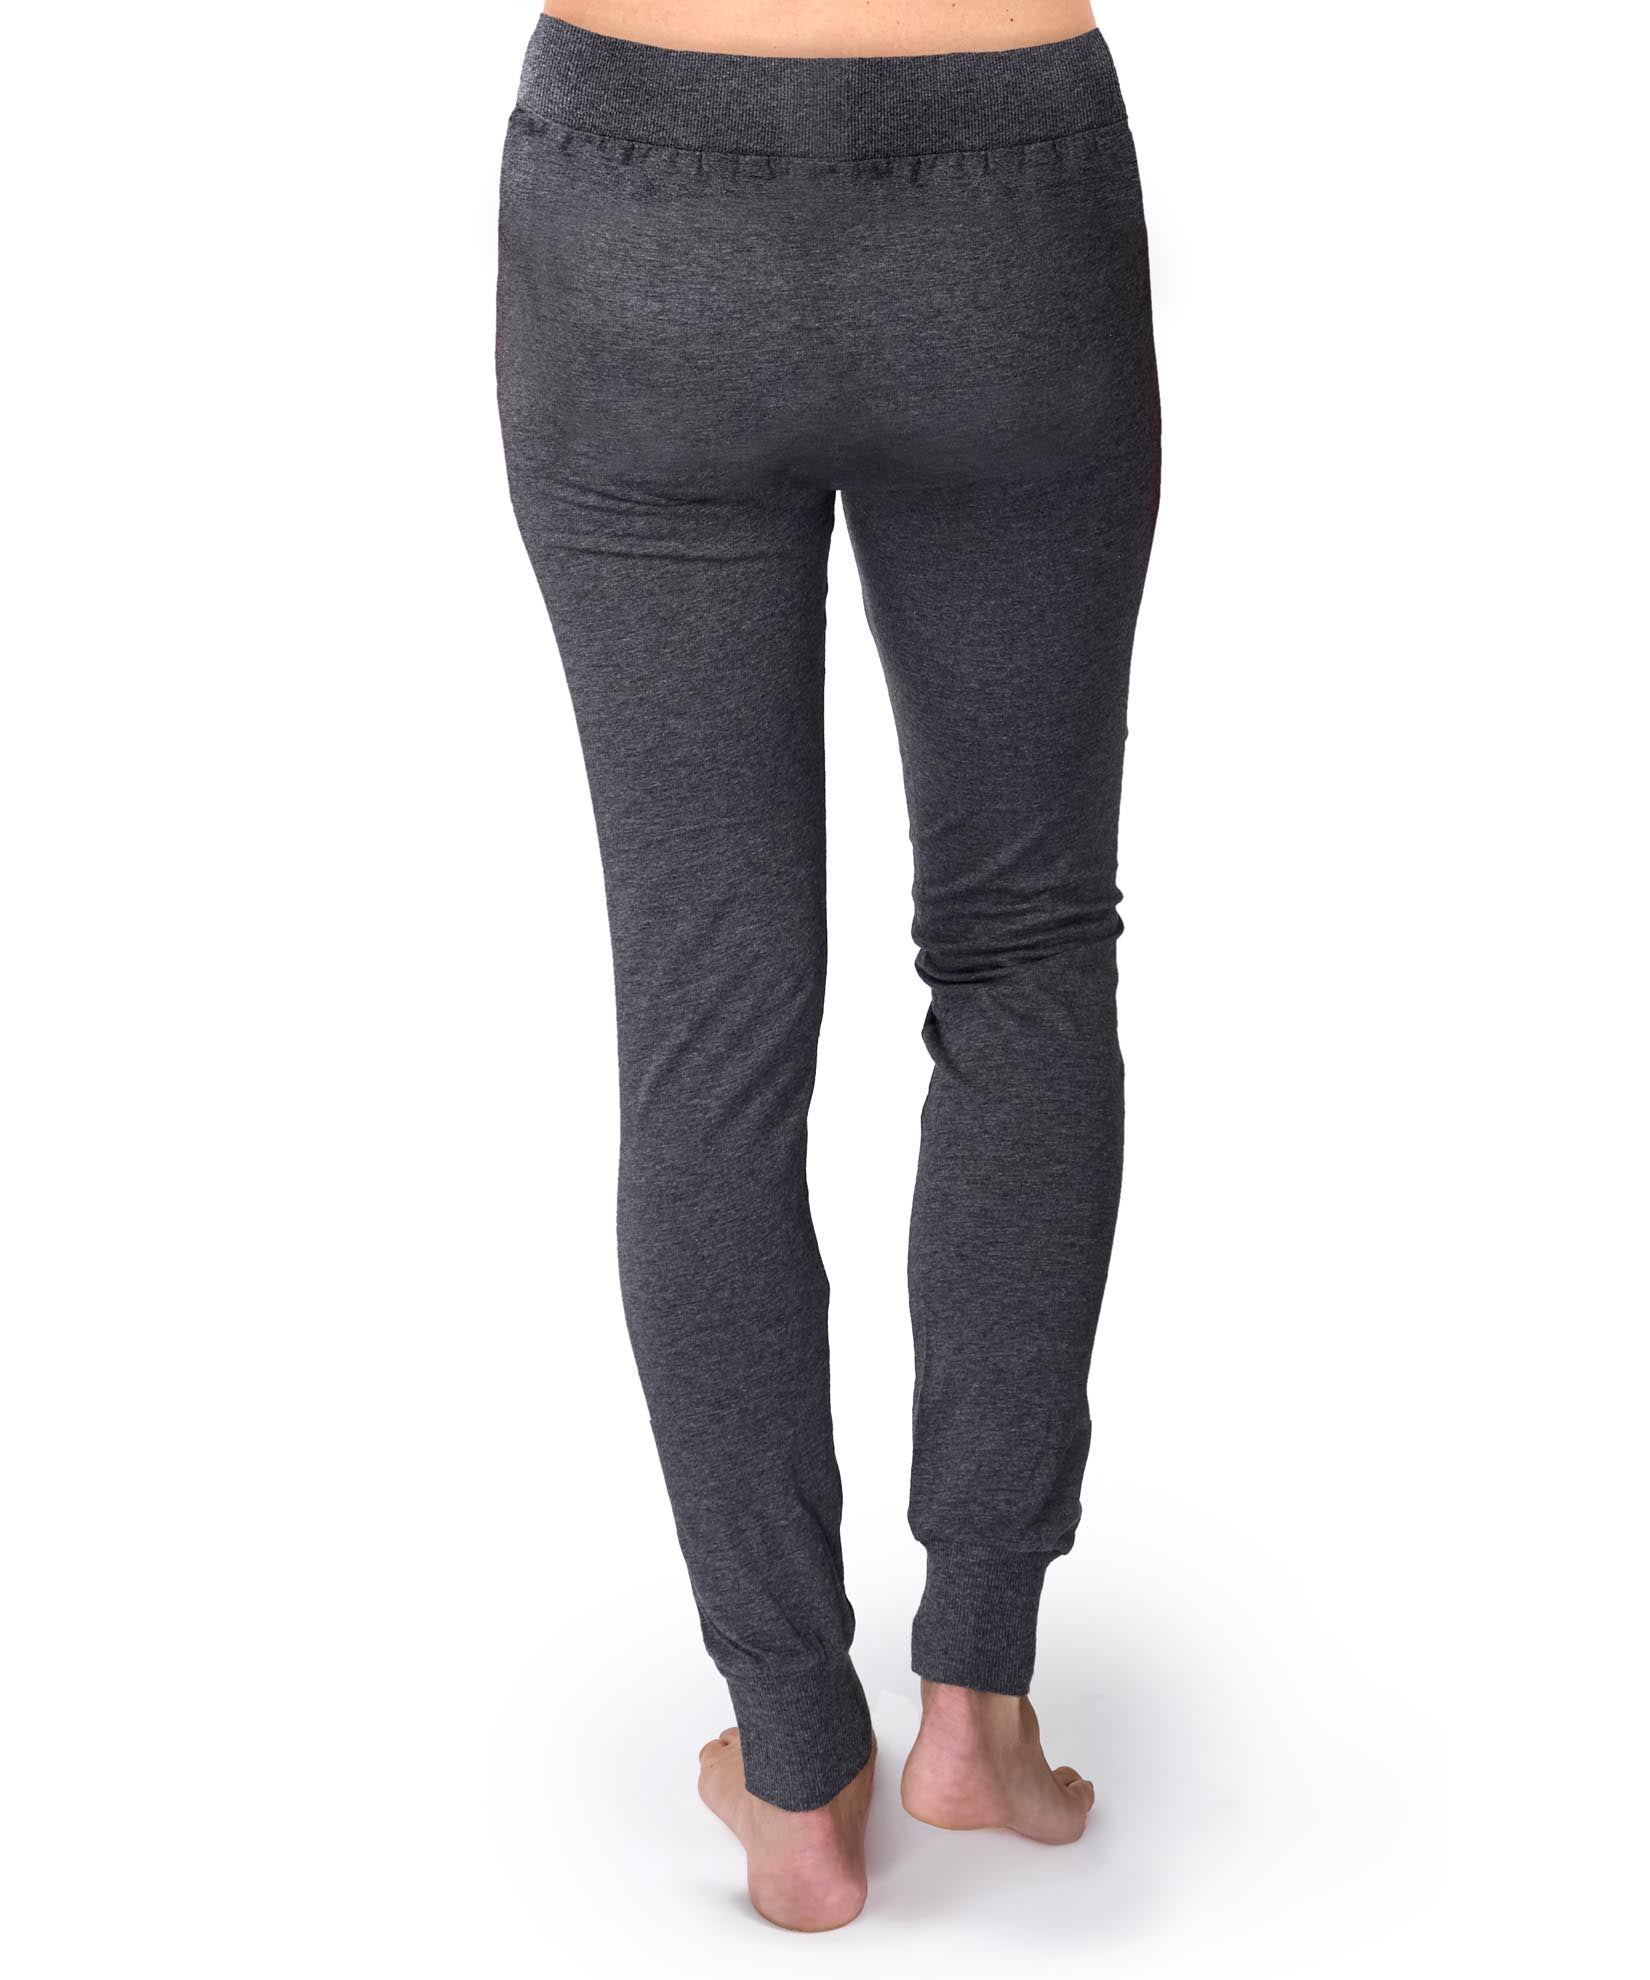 Dark Grey - Heather Legging